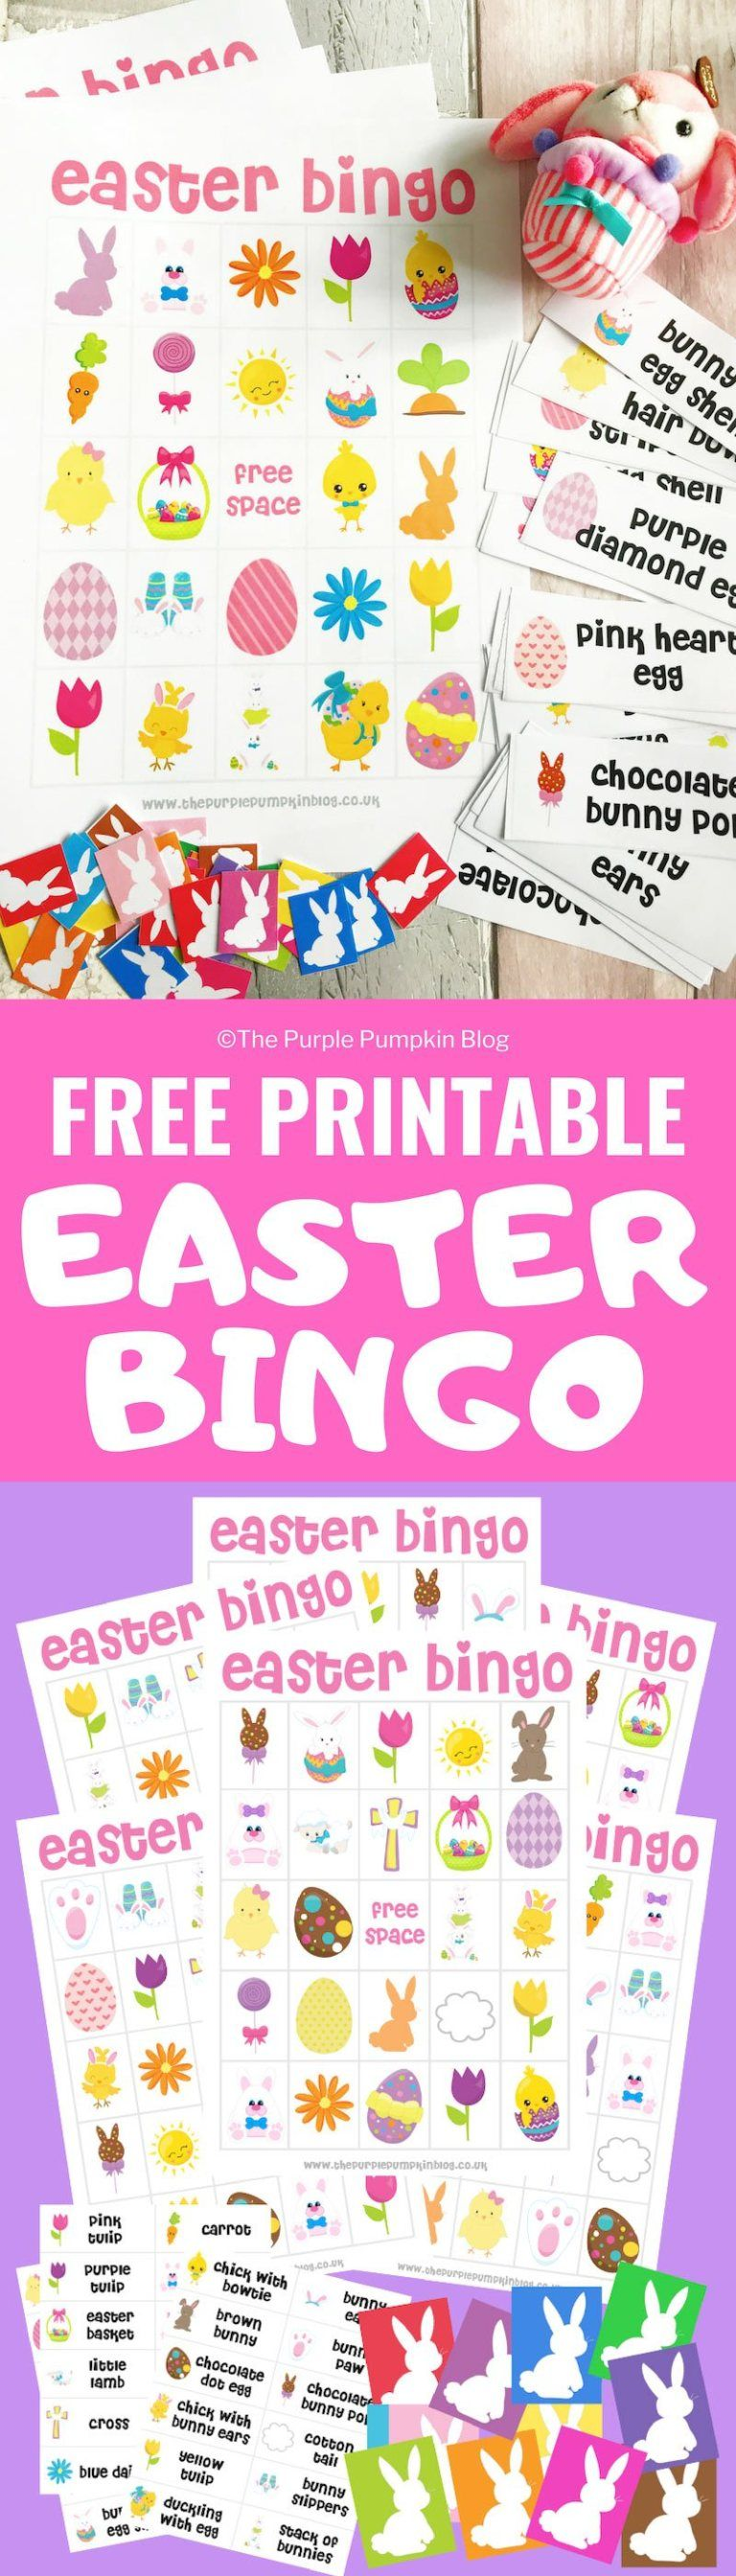 Free Printable Easter Bingo Game